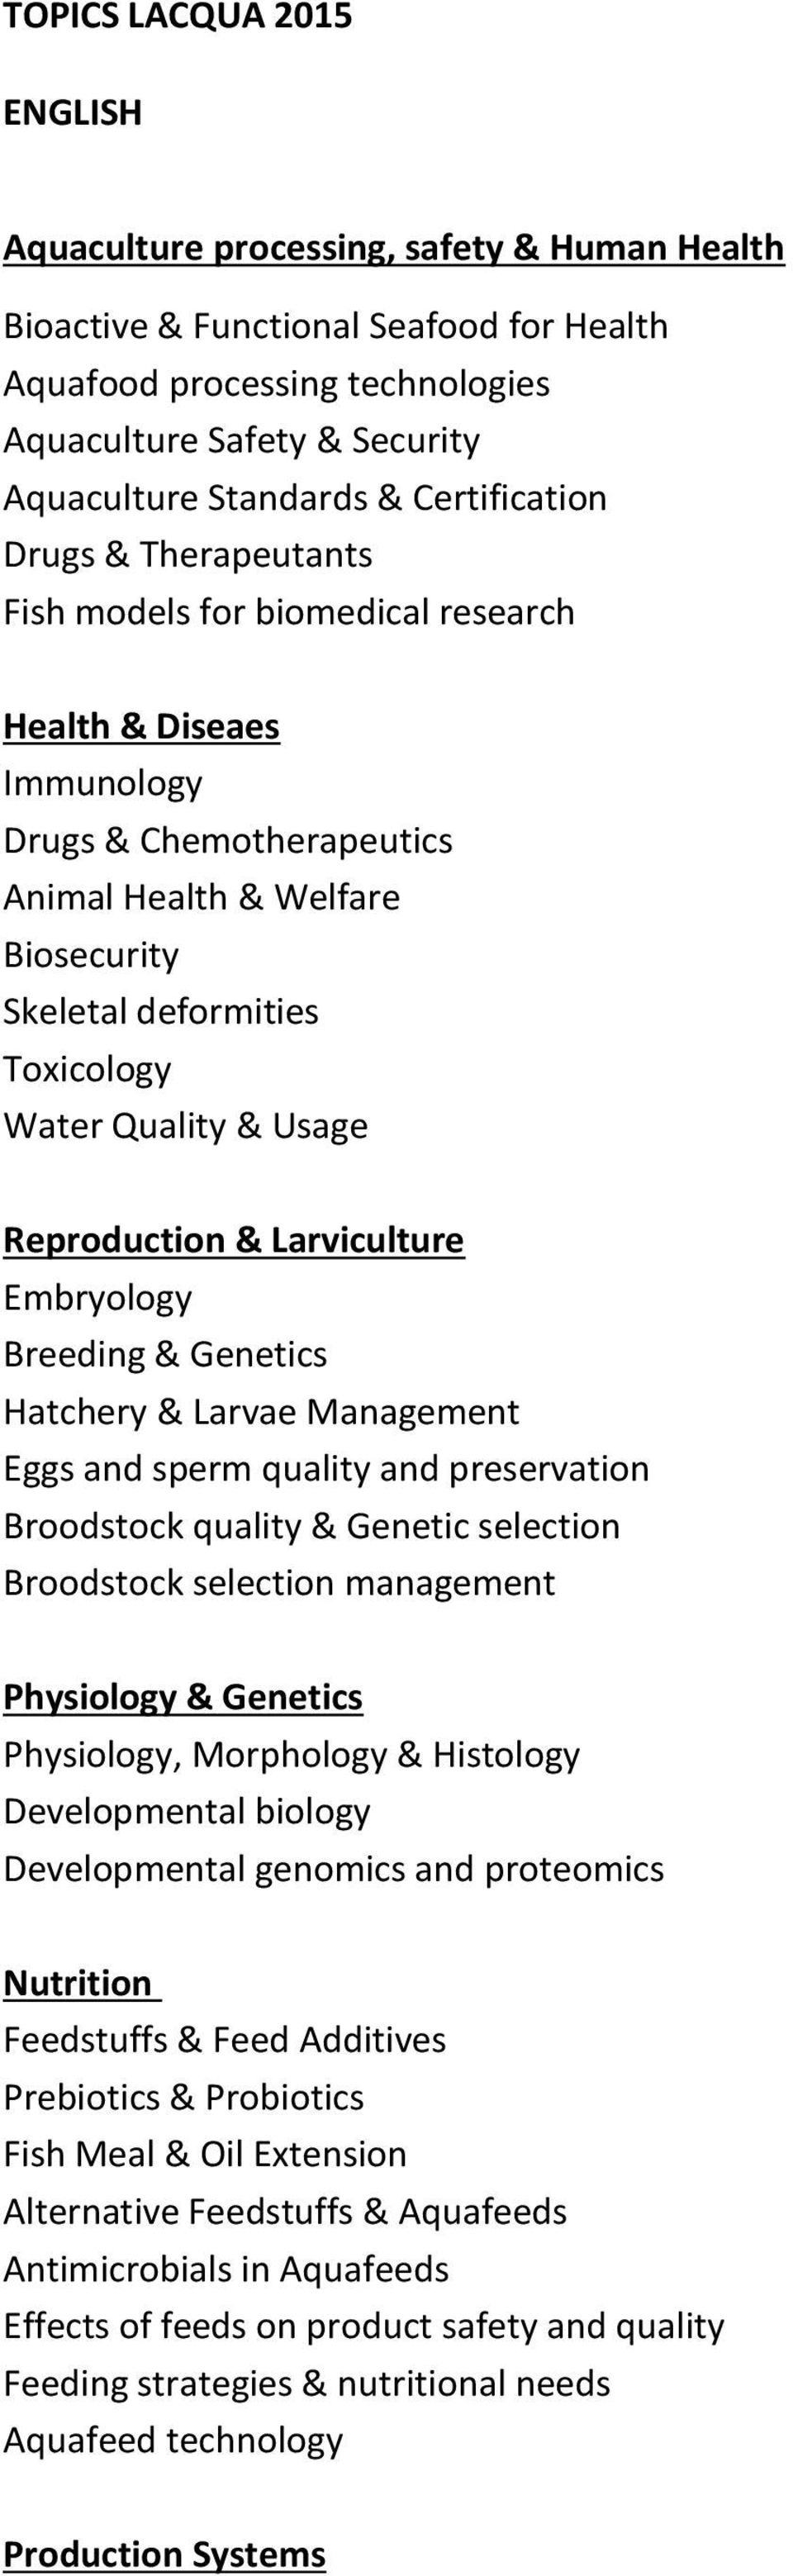 Water Quality & Usage Reproduction & Larviculture Embryology Breeding & Genetics Hatchery & Larvae Management Eggs and sperm quality and preservation Broodstock quality & Genetic selection Broodstock